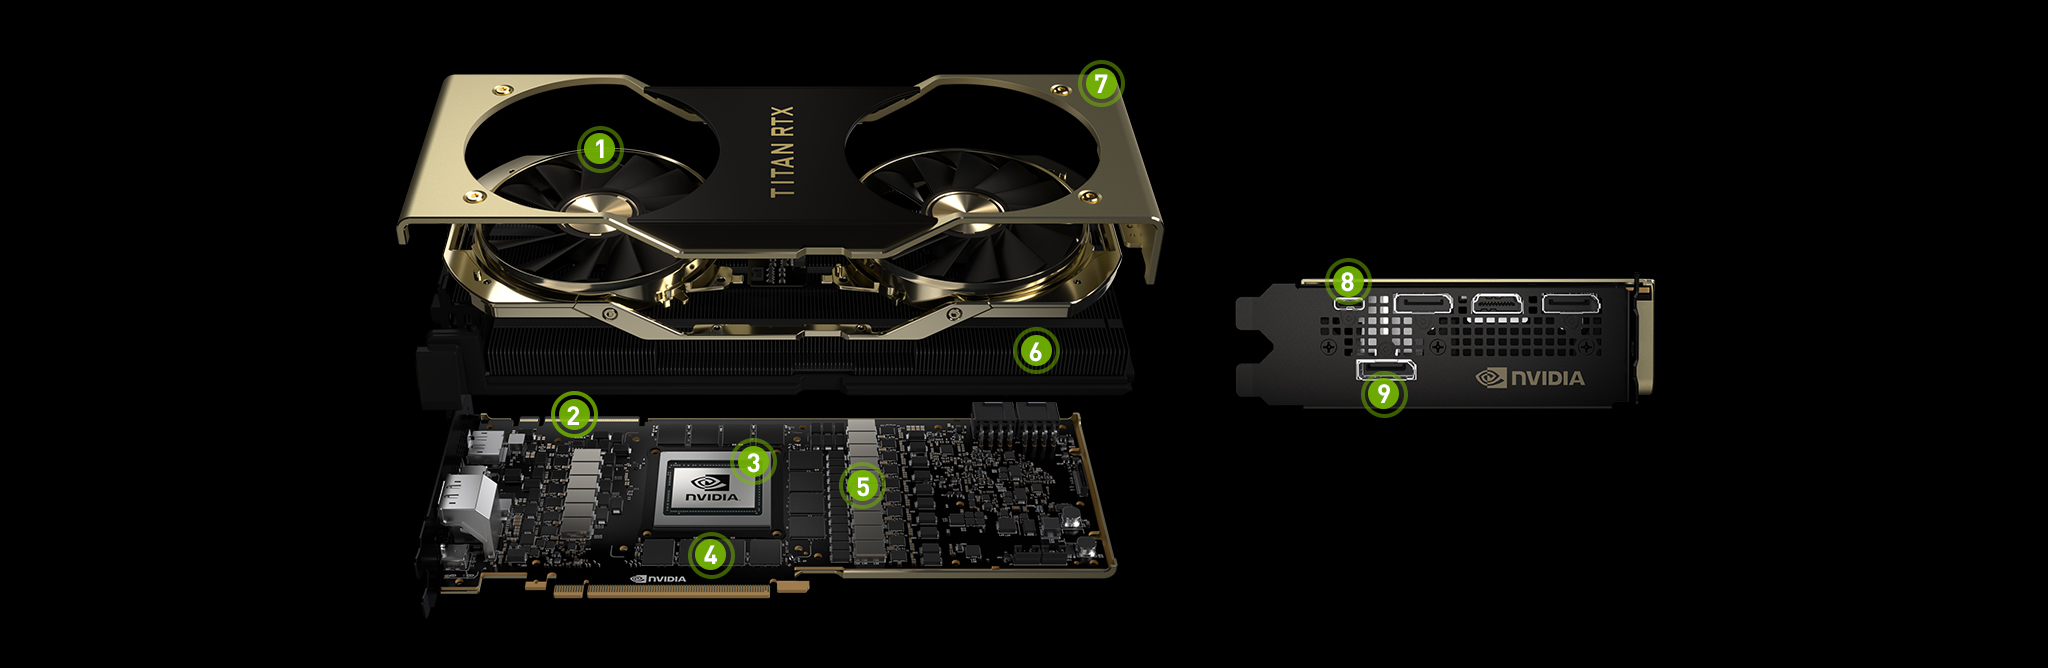 nvidia-titan-rtx-static-exploded-view-1350-t@2x